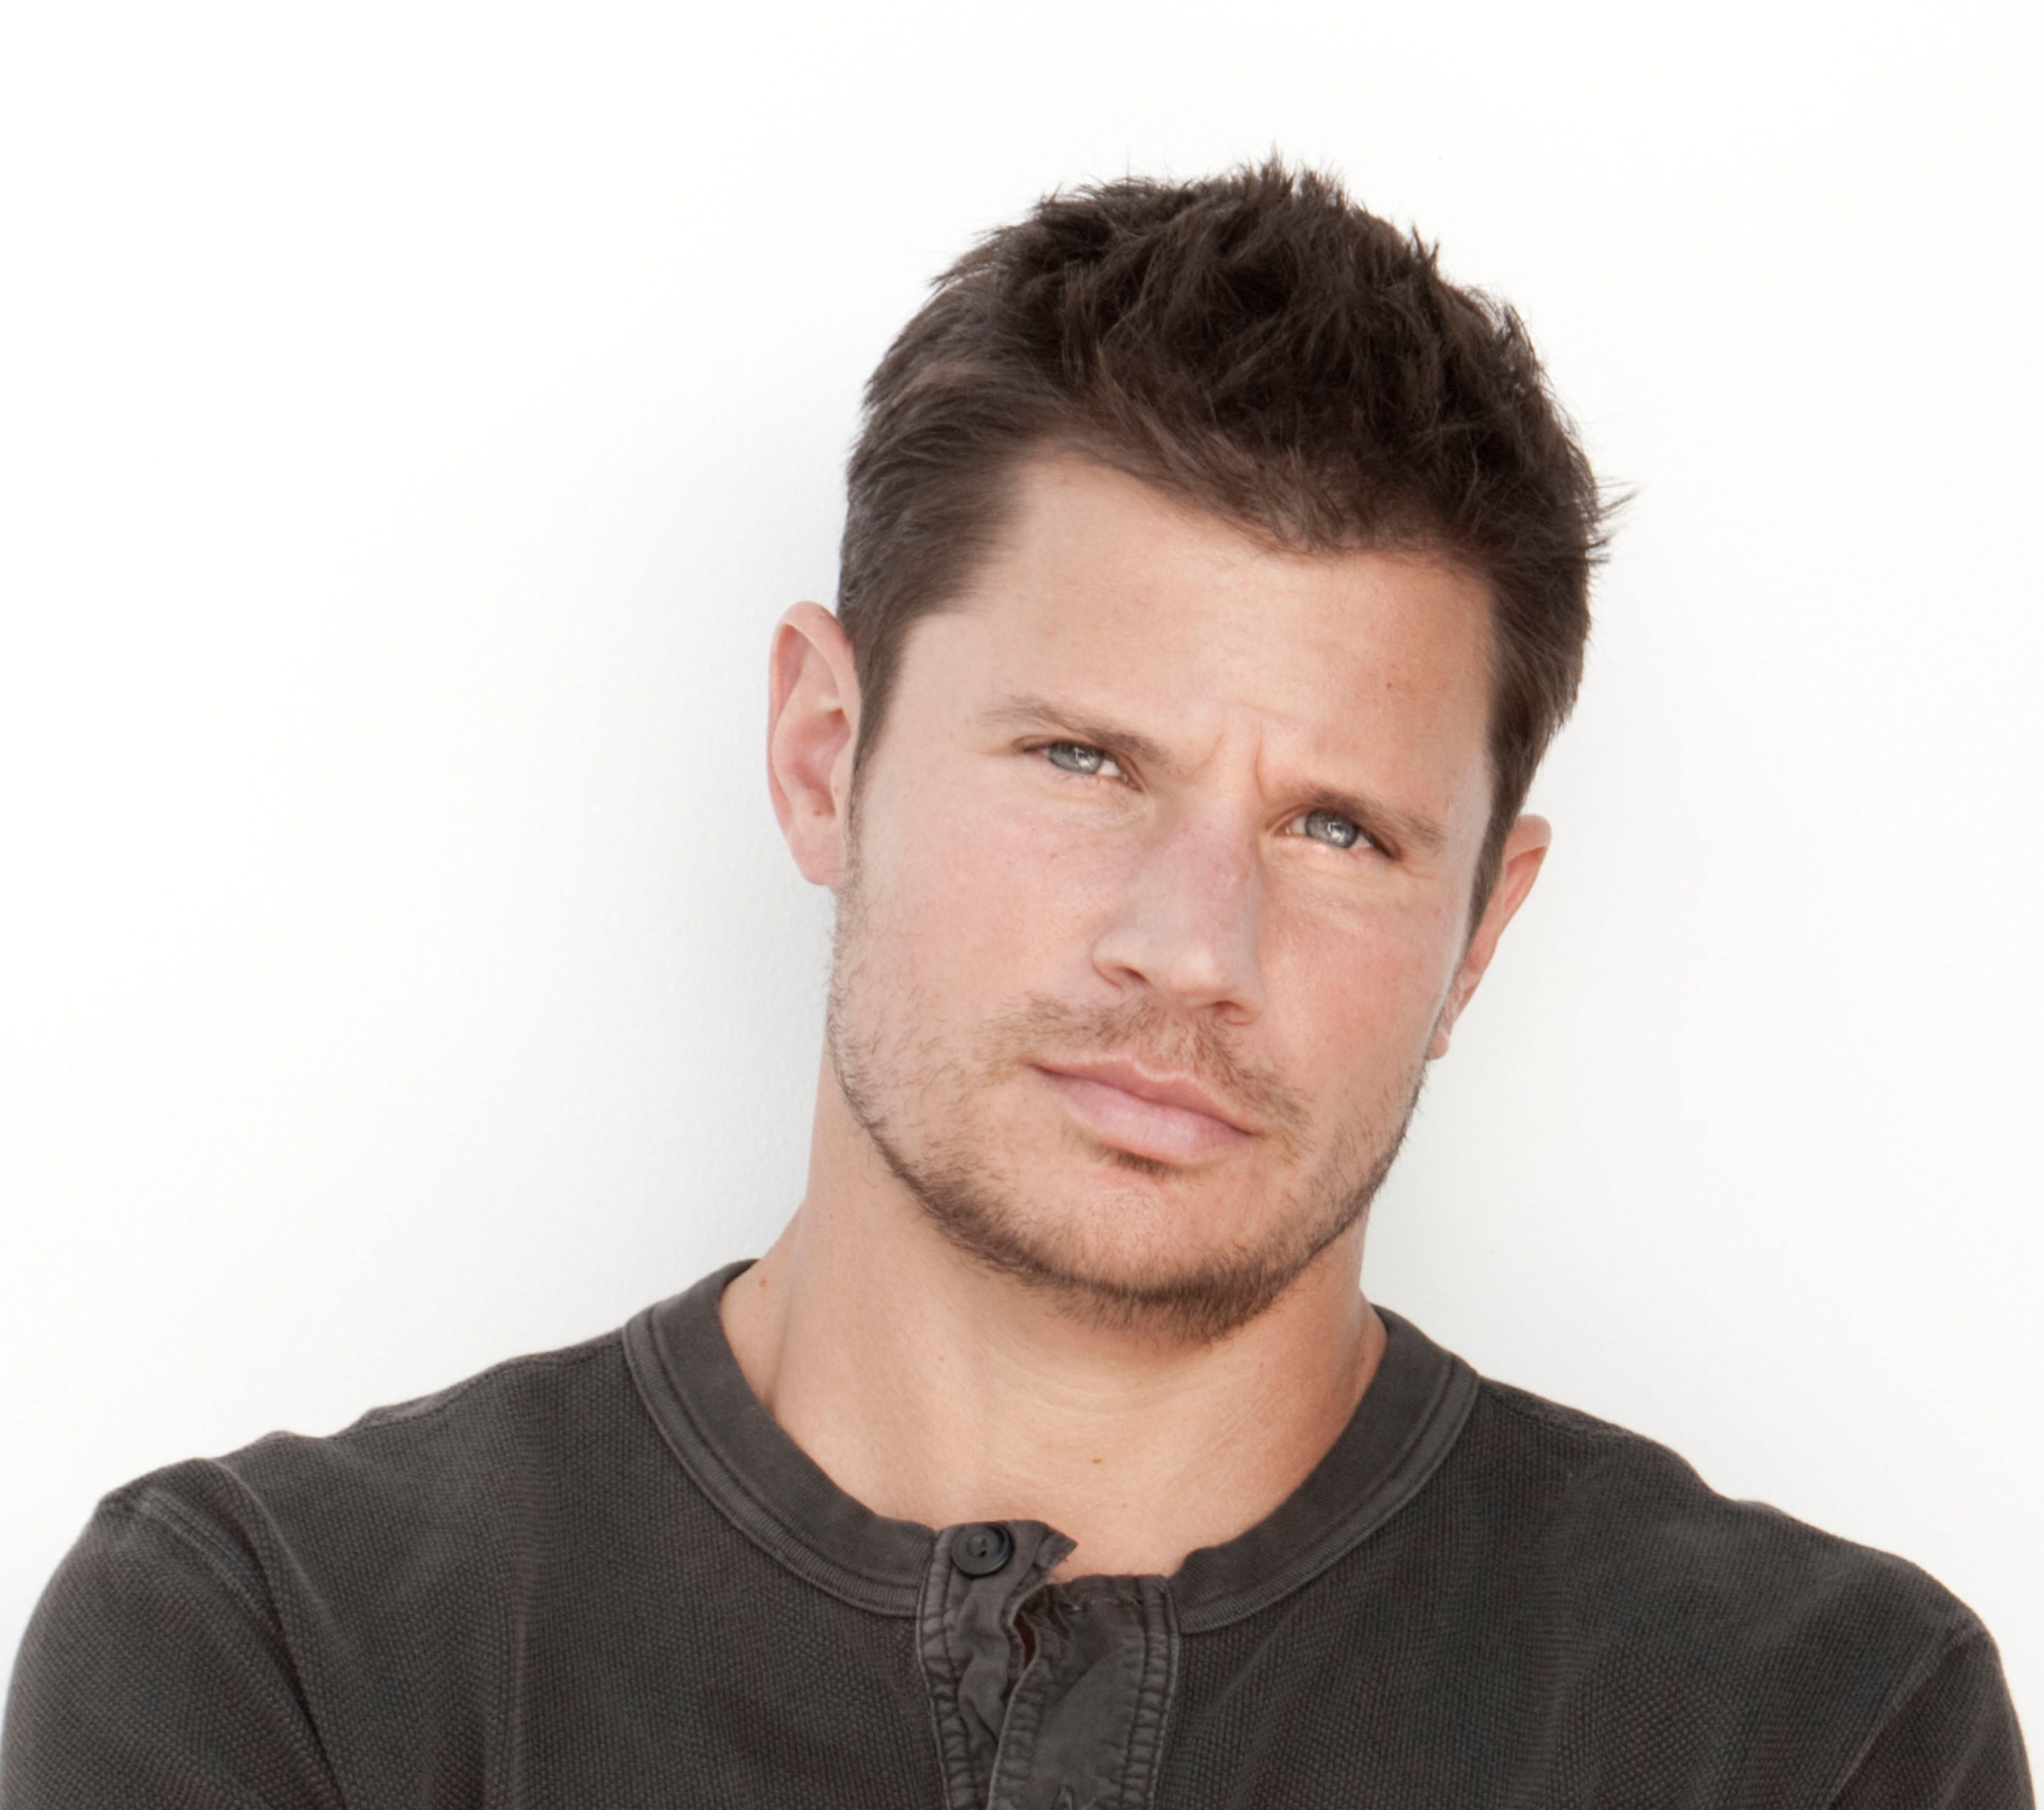 Multi-Platinum Recording Artist Nick Lachey Joins VH1 'Big Morning Buzz Live' as Spring 2014 Host